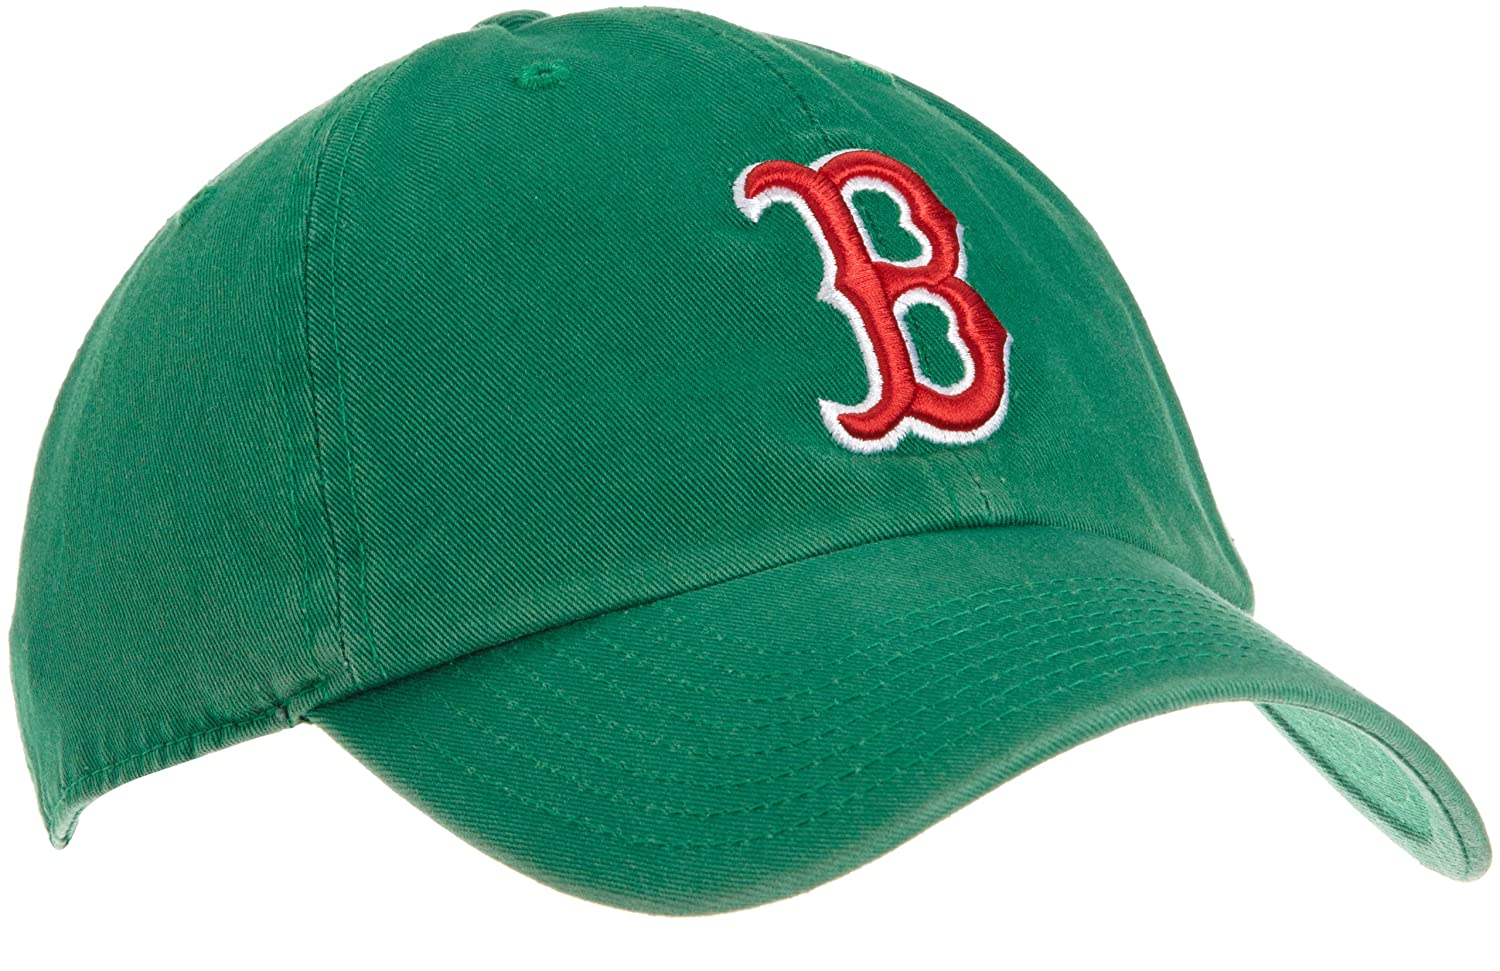 2daafa5da2d ... where to buy amazon mlb boston red sox st. pattys clean up adjustable  cap green